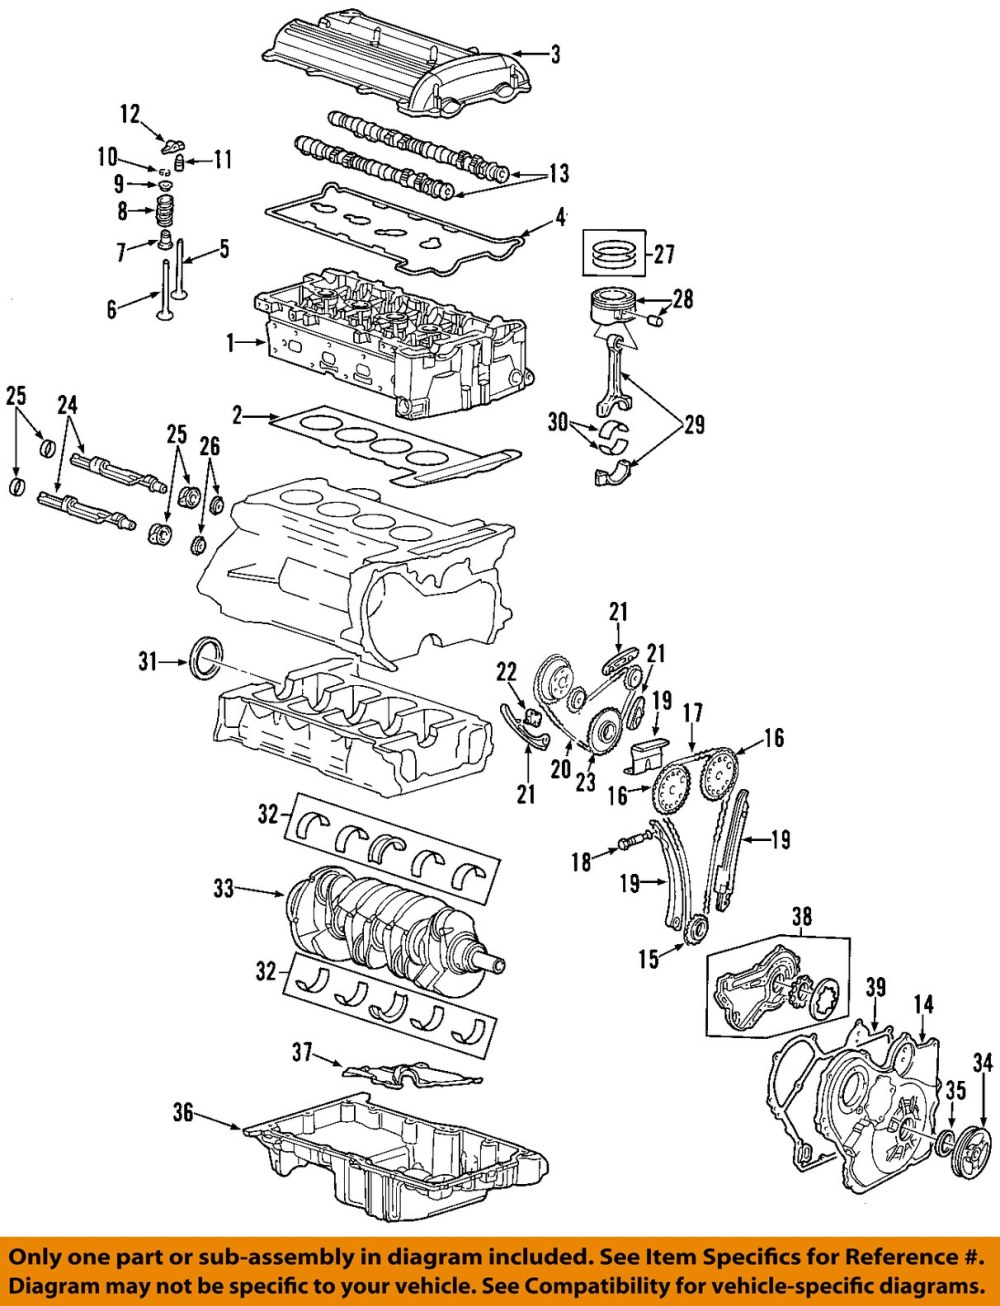 medium resolution of 2002 saturn vue 2 2 liter ecotec engine diagram wiring diagrams saturn 2 2 engine diagram